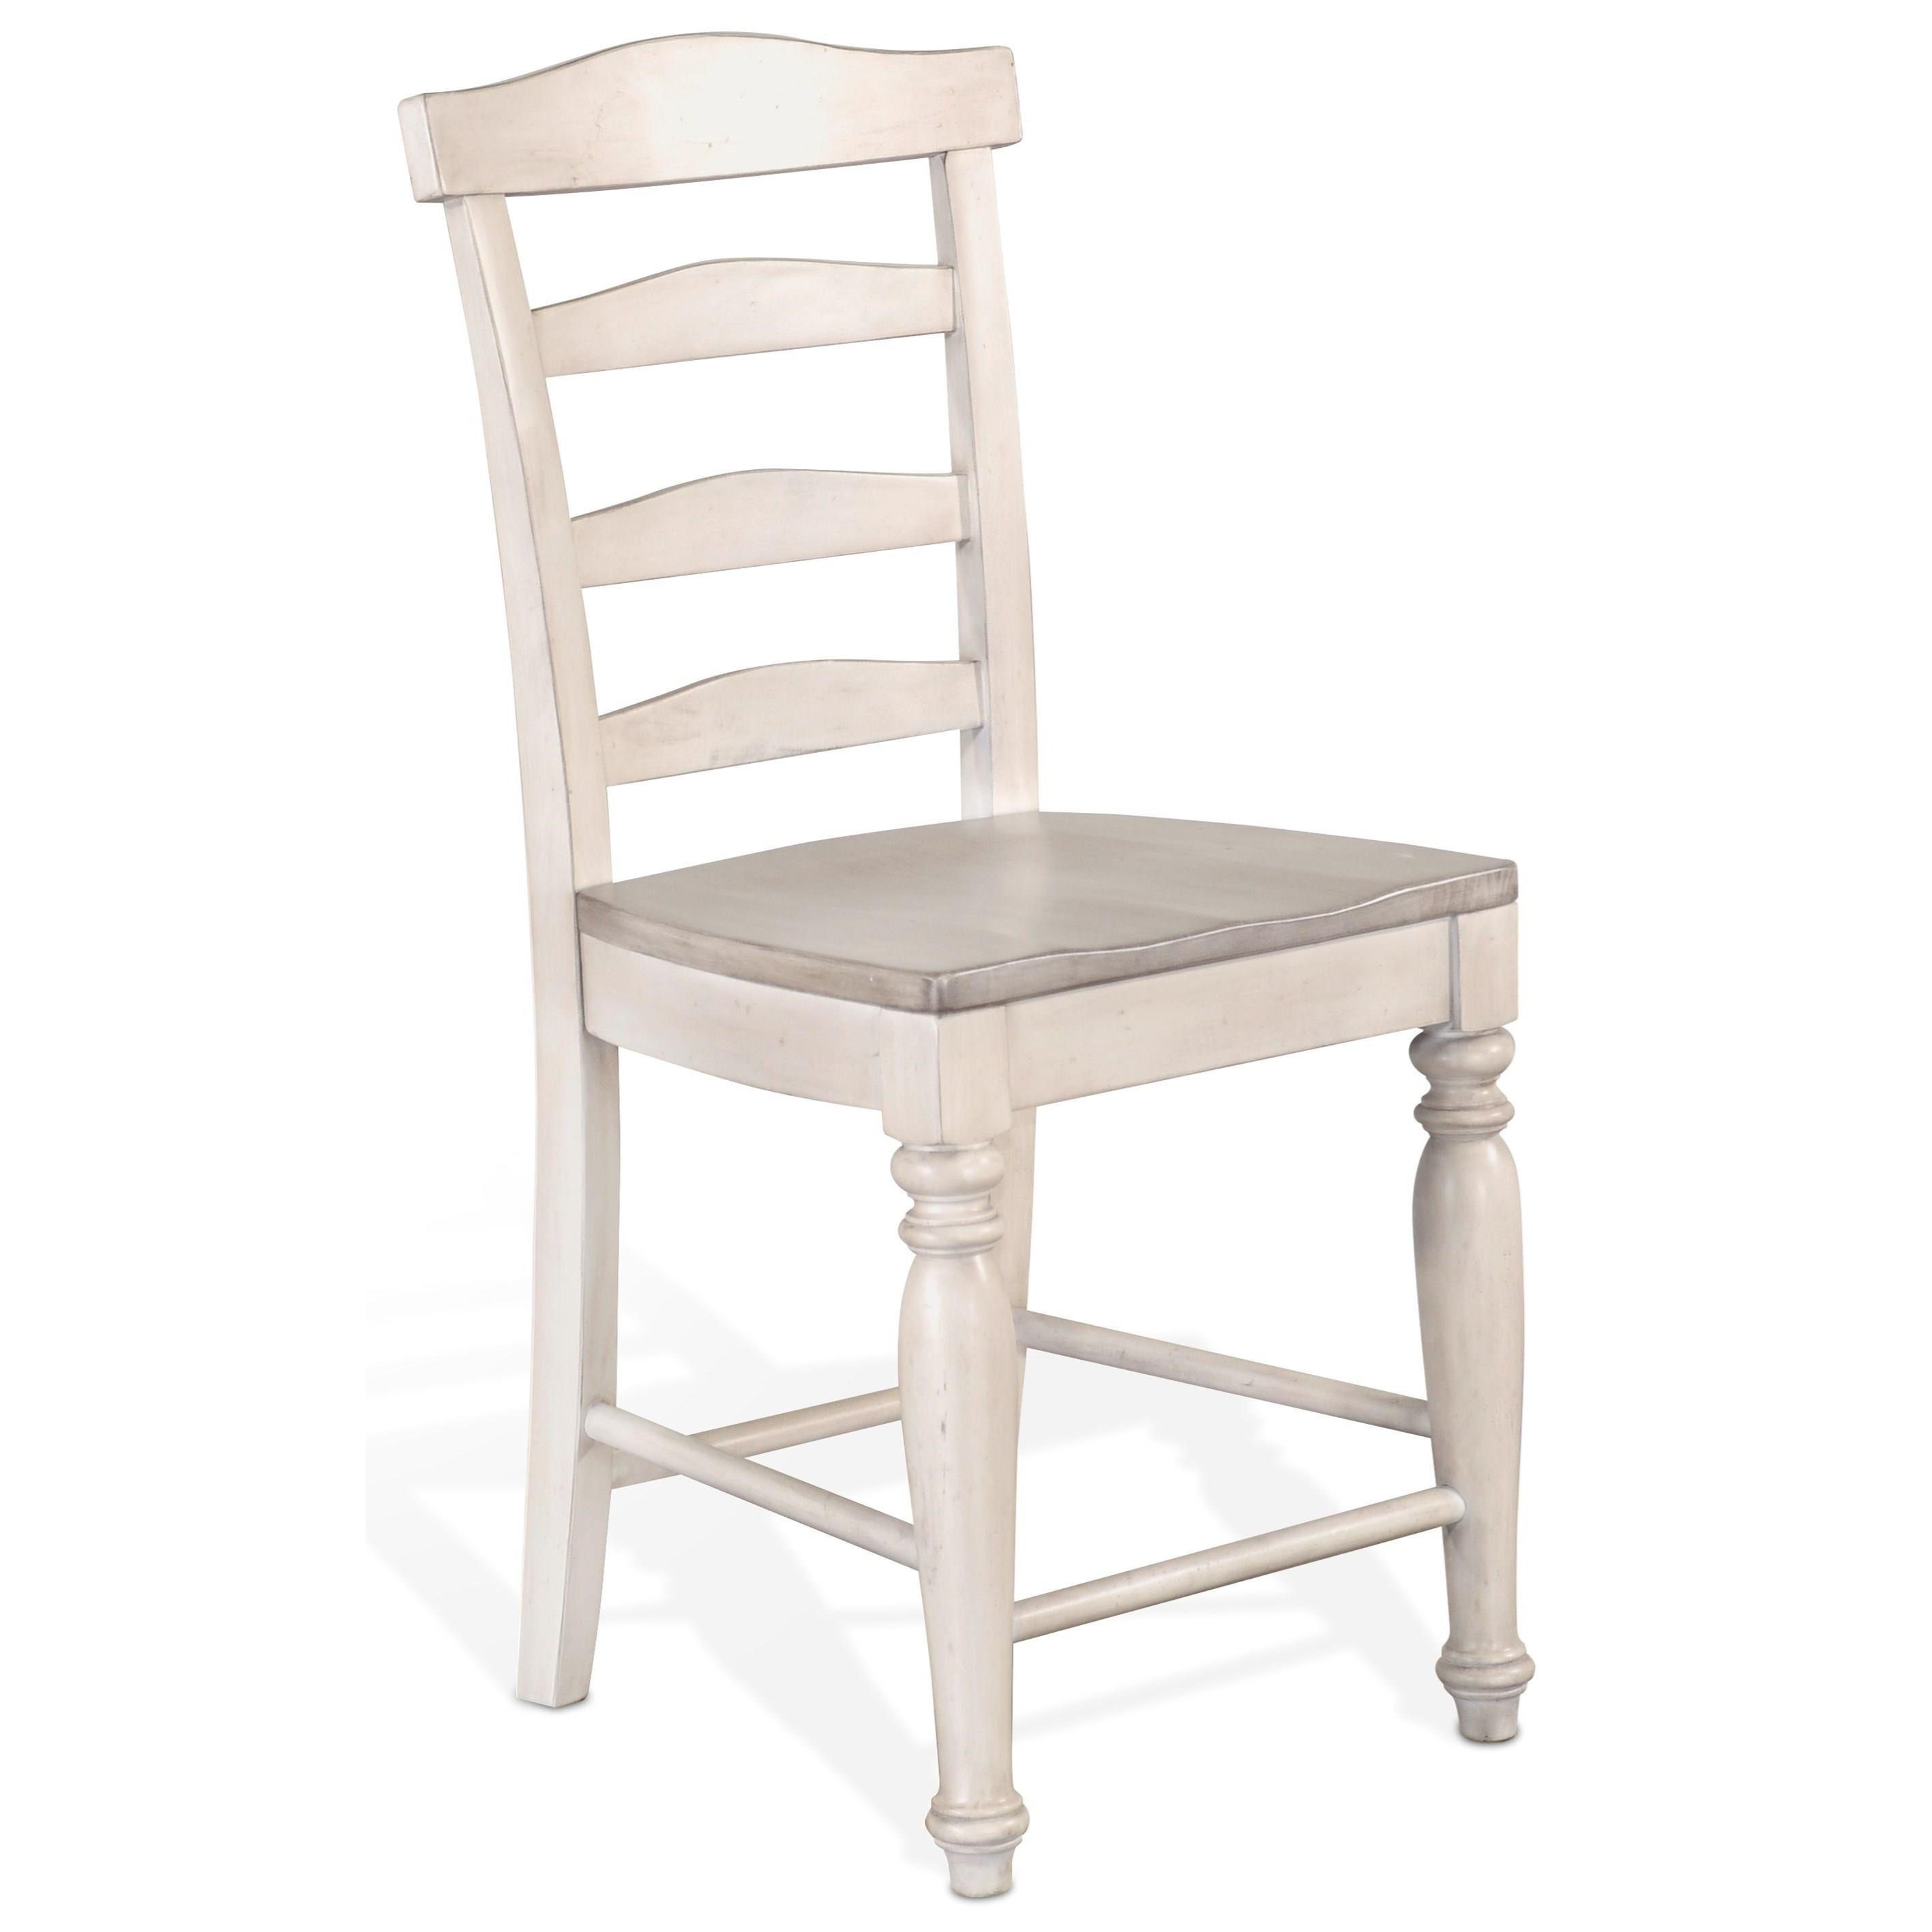 Westwood Village 24 Inch Barstool by Sunny Designs at Stoney Creek Furniture